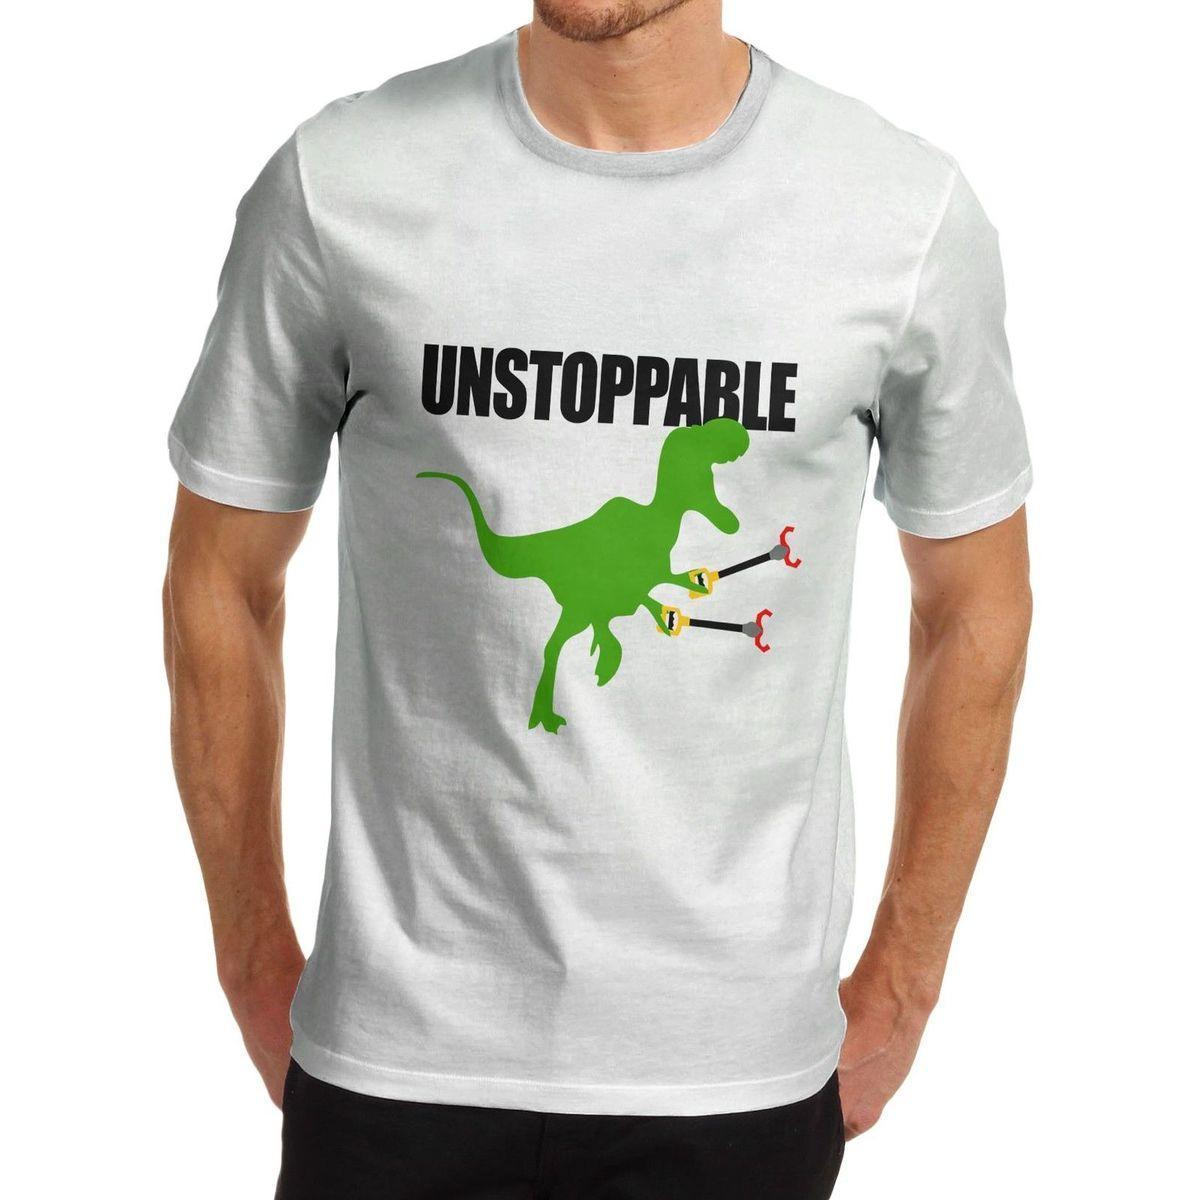 0f70217f Men'S Funny Unstoppable T Rex Dinosaur T Shirt Short Sleeves Cotton Fashion T  Shirt Comfortable Top Tee Buy Cool T Shirts Online Funny Offensive T Shirts  ...